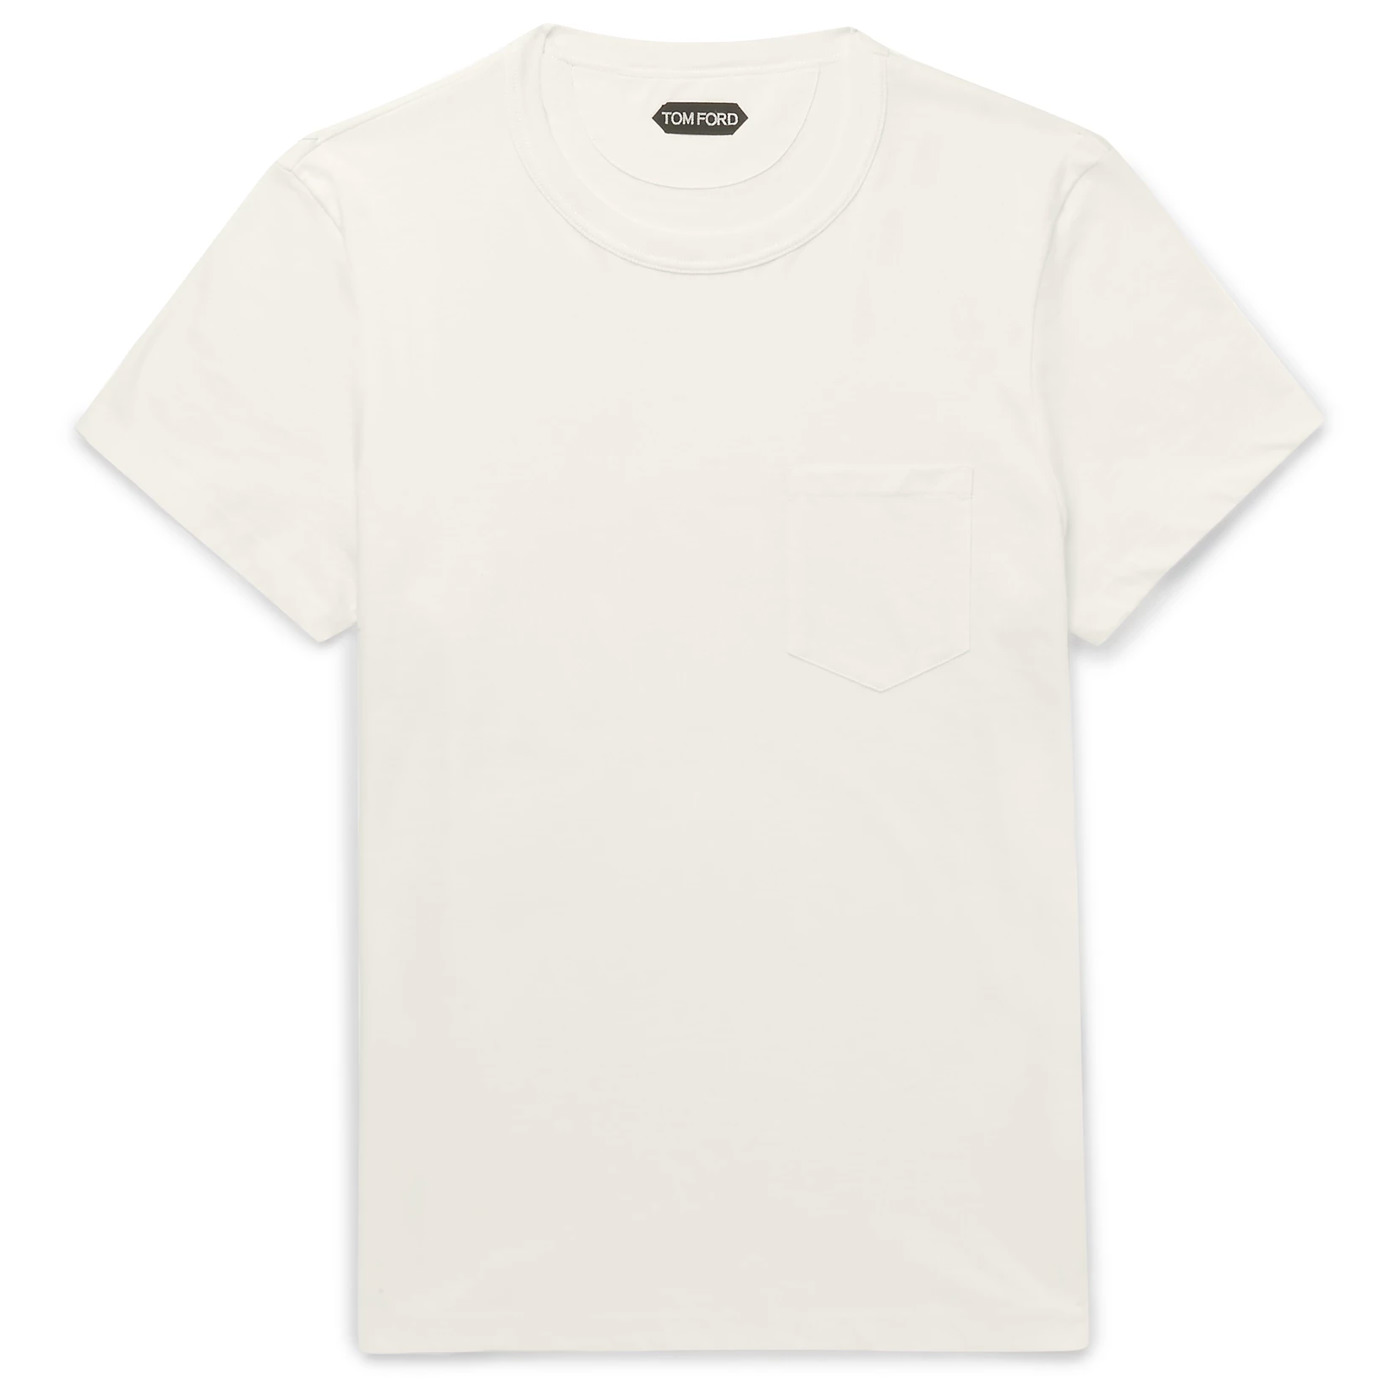 Style Mr Porter T-Shirt Tom Ford Jersey